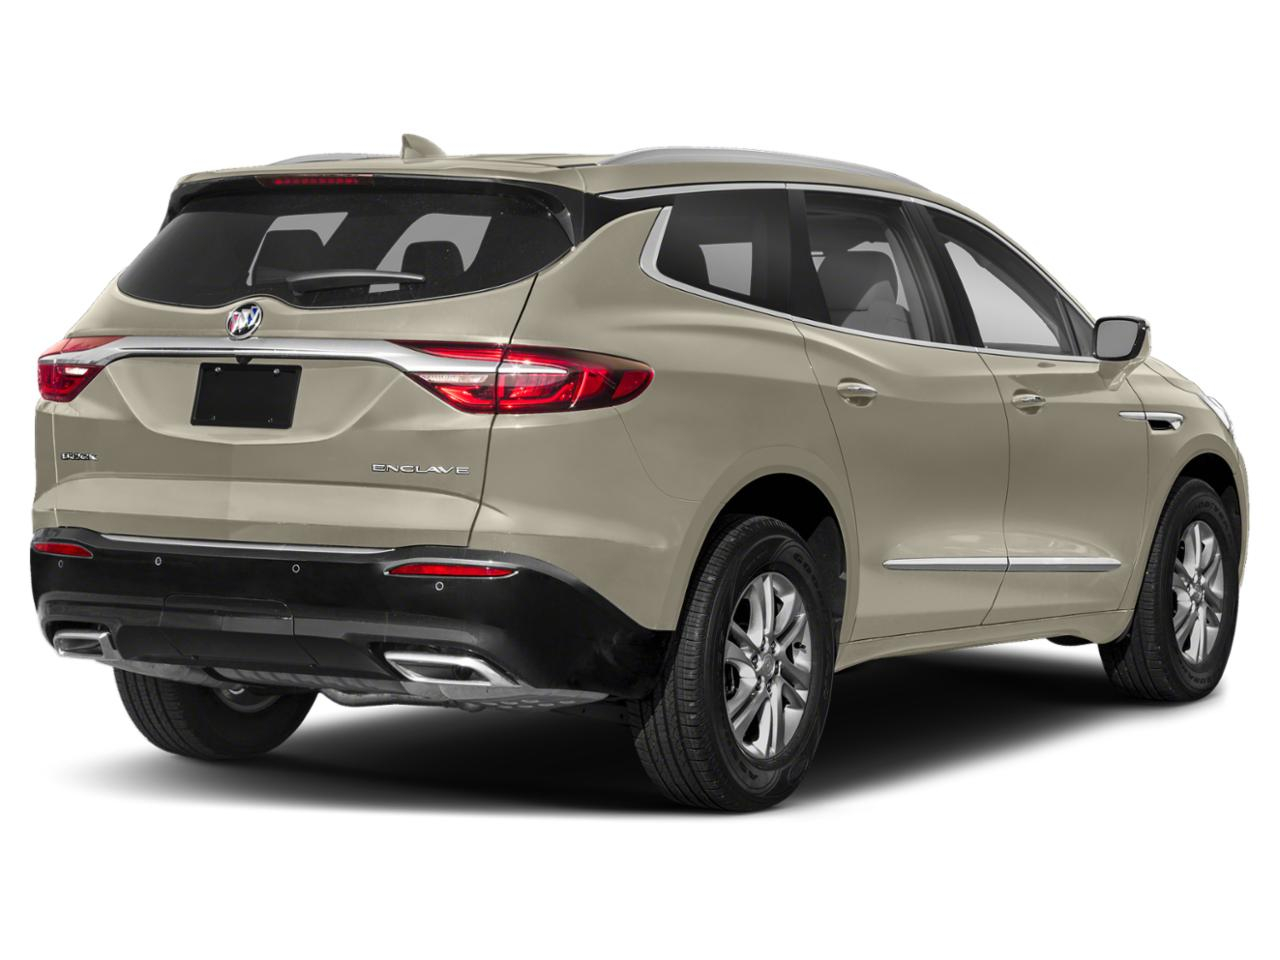 New 2020 Buick Enclave For Sale At Griffin Buick Gmc New 2022 Buick Enclave Avenir Test Drive, Lease Deals, Floor Mats